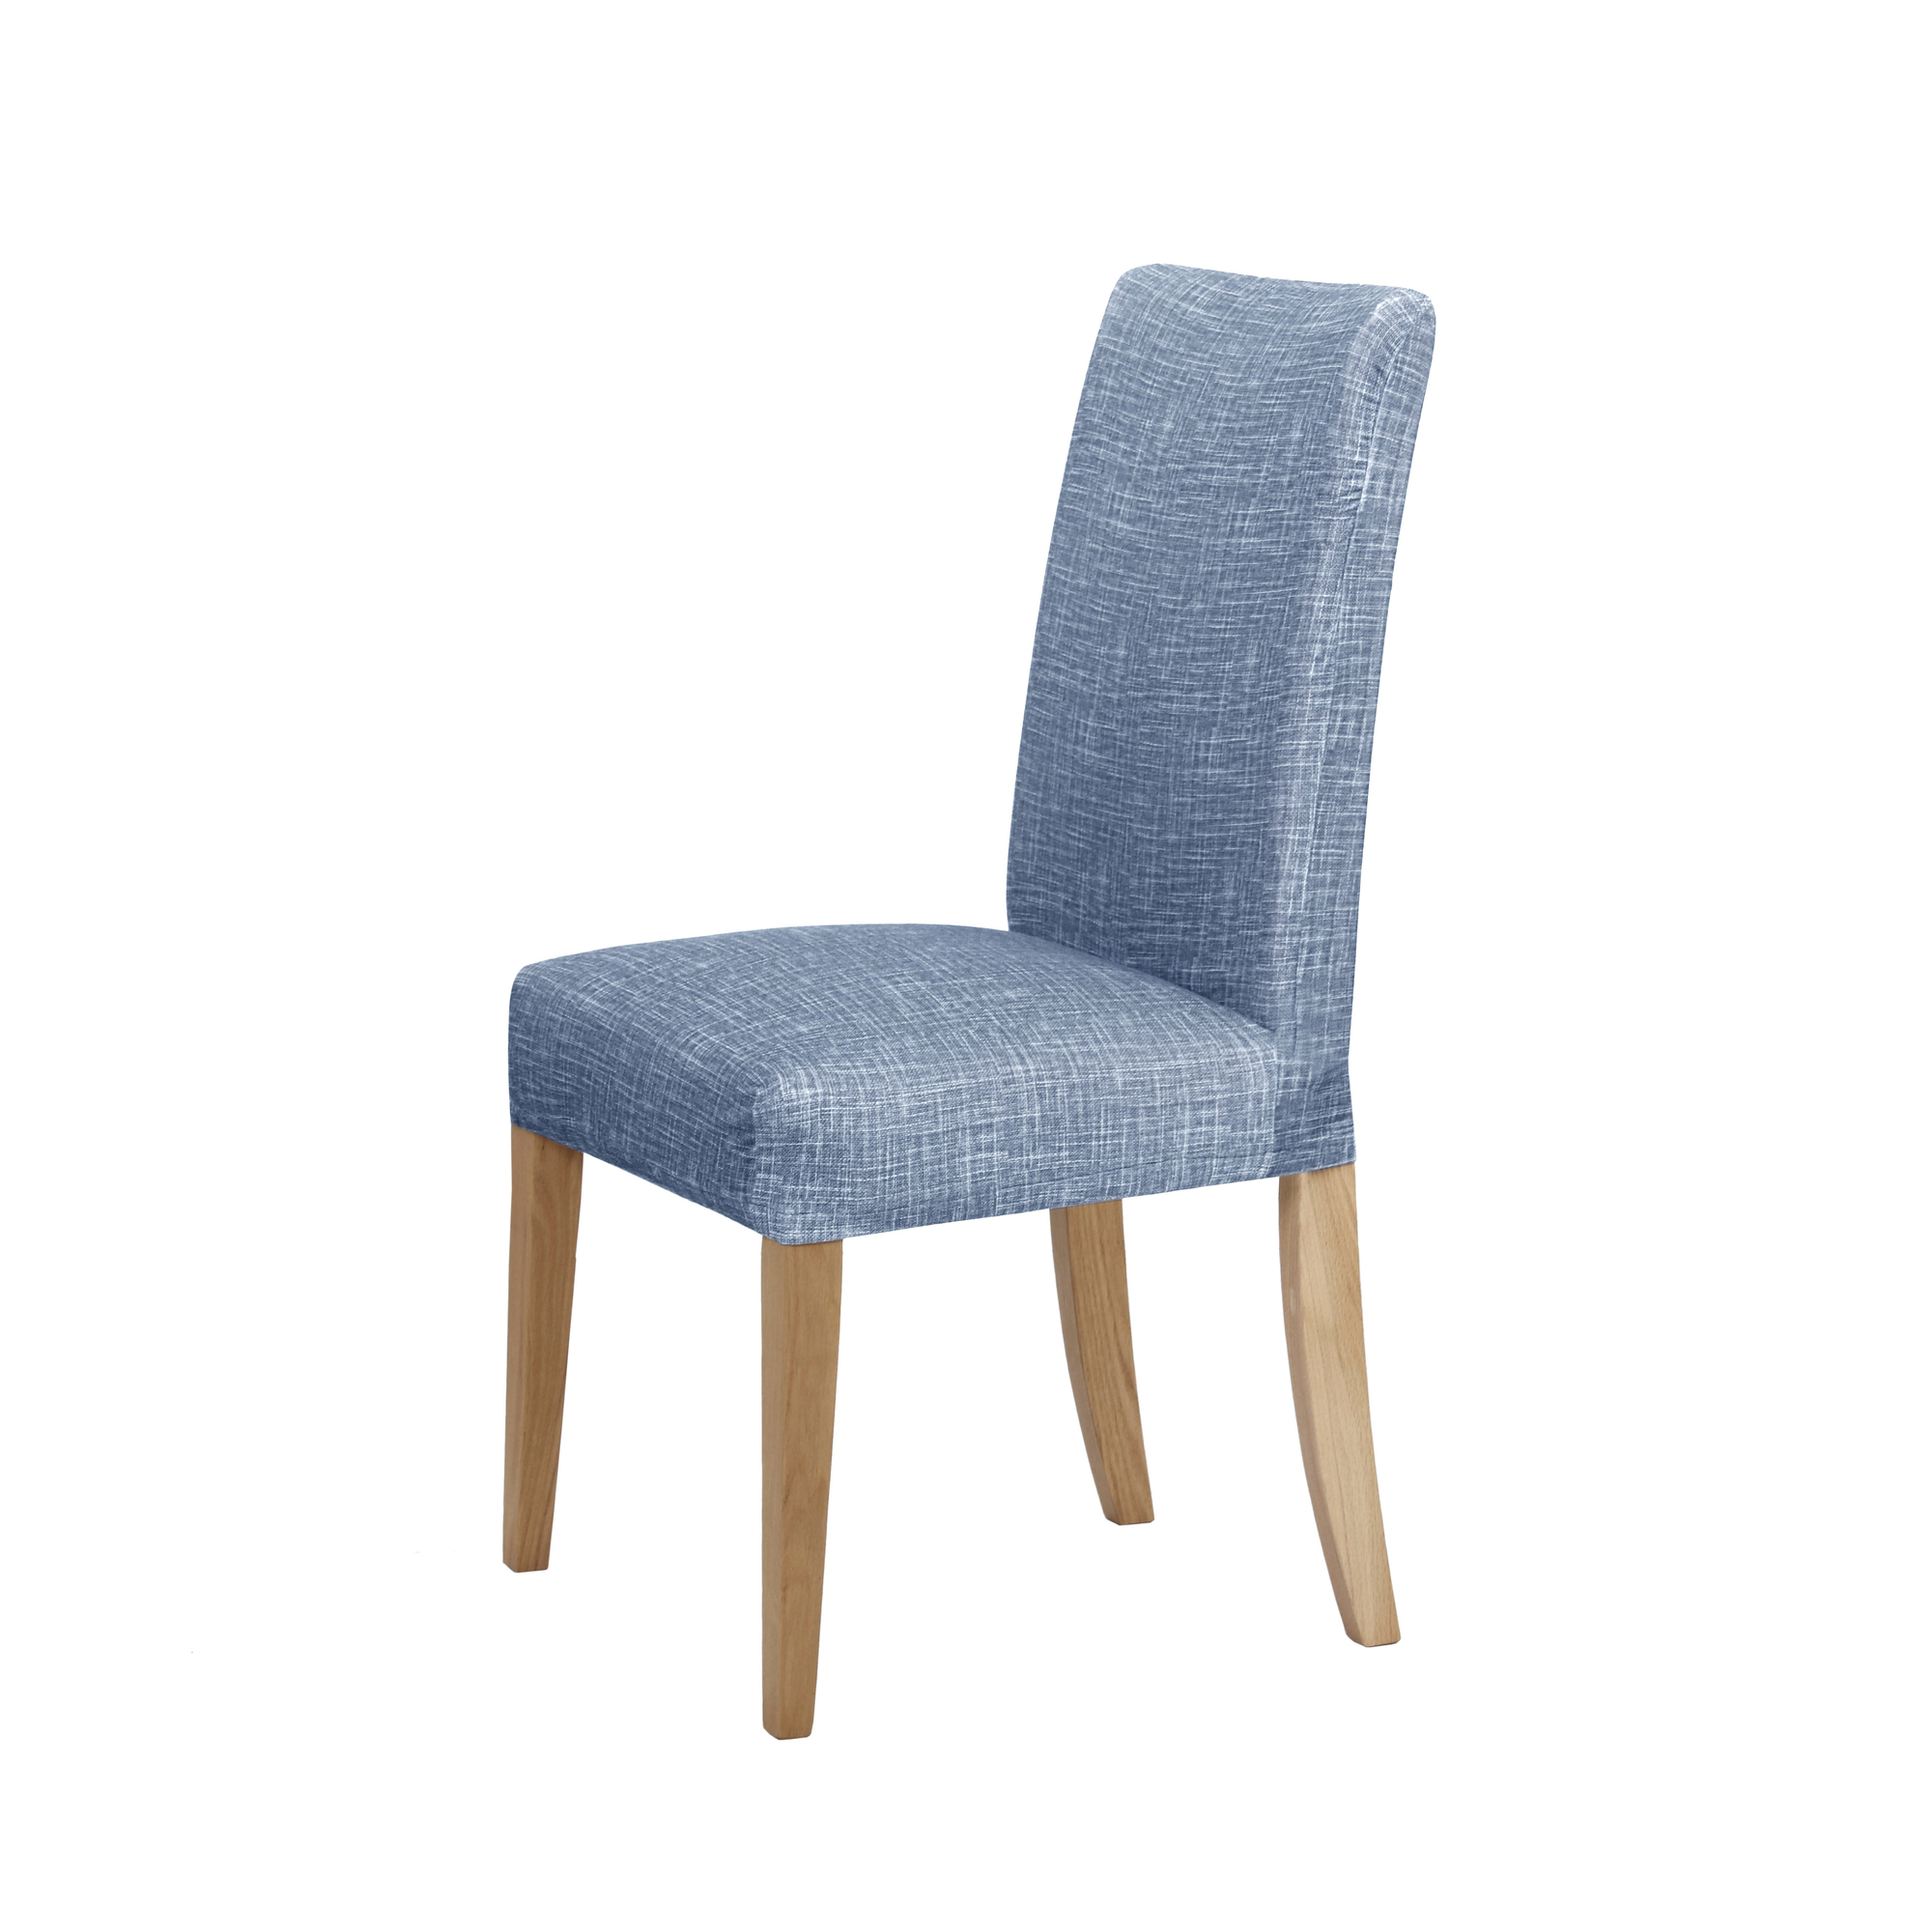 SKU HOMI1194 Blue Stretch Dining Room Chair Cover Is Also Sometimes Listed Under The Following Manufacturer Numbers 73463